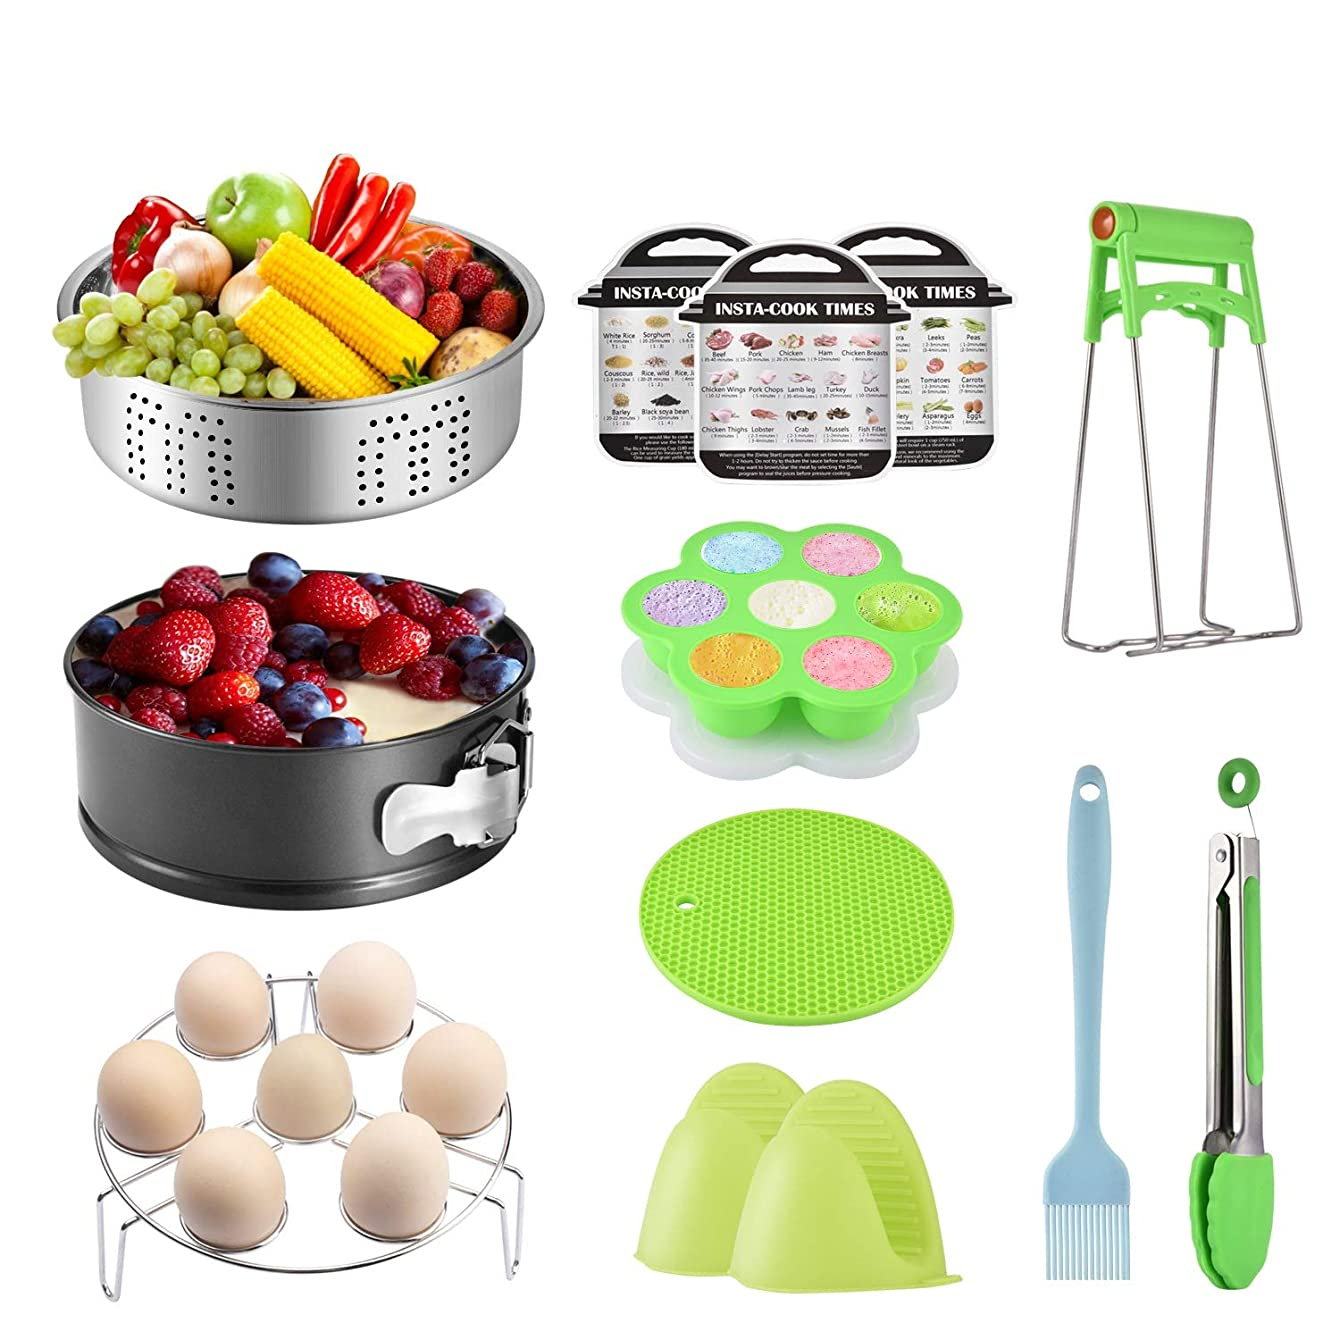 Pressure Cooker Accessories For Instant Pot 5 6 8 qt with Silicone Egg Bite Mold, Basting brush, Steamer Baskets, Springform Pan, Kitchen Tong, Oven Mitts, and More - 12 Pcs